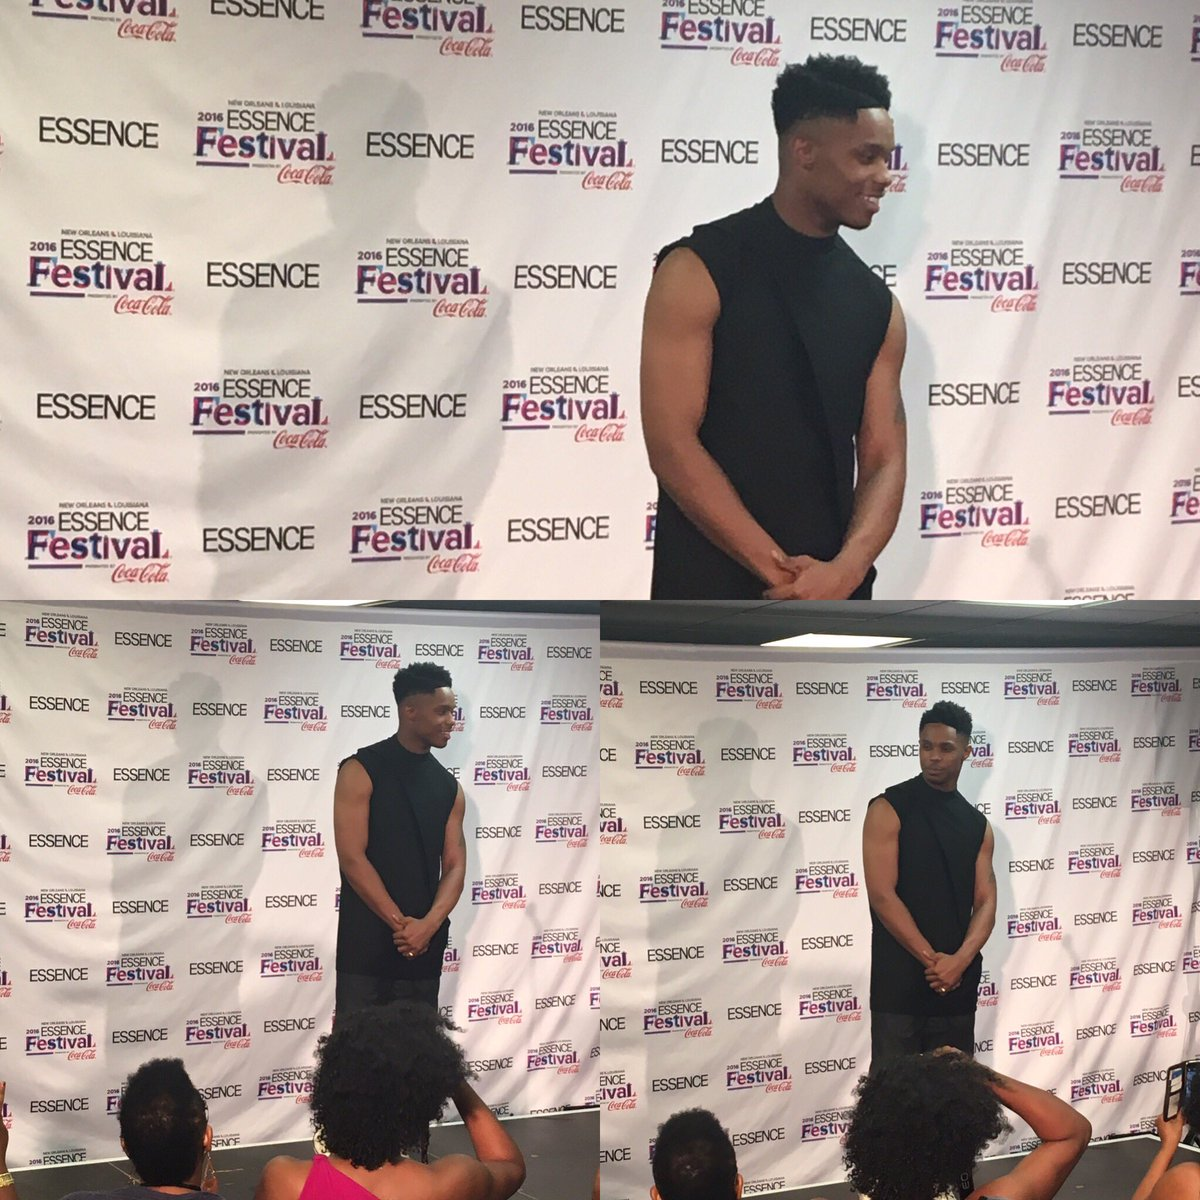 Checking out @AveryWilson in the #EssenceFest media rm tkg abt his 1st #Mainstage show! #EssenceFestival #Talented https://t.co/ELwjzRhRl7